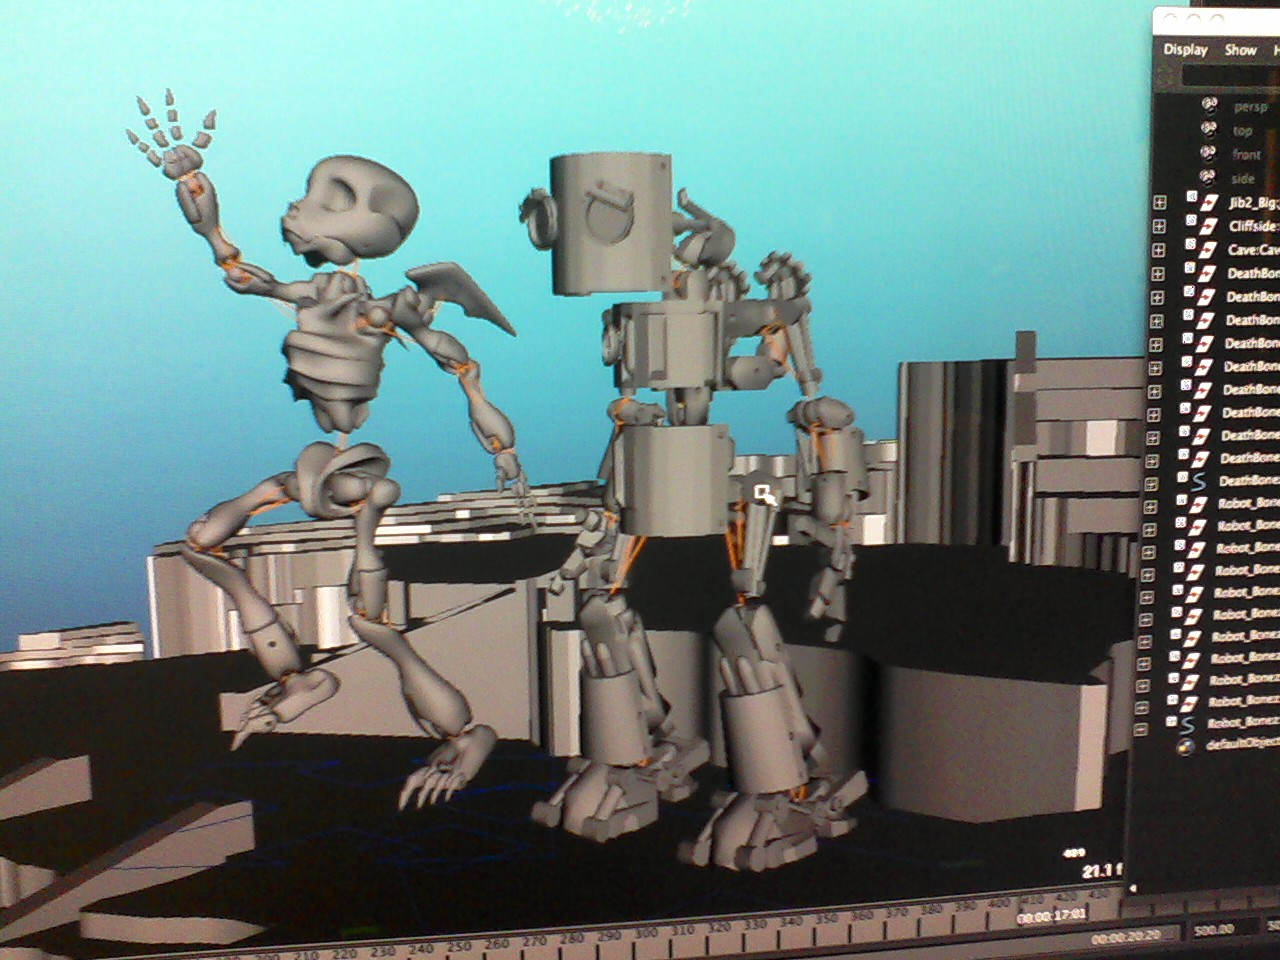 Death and Robot Model Posed